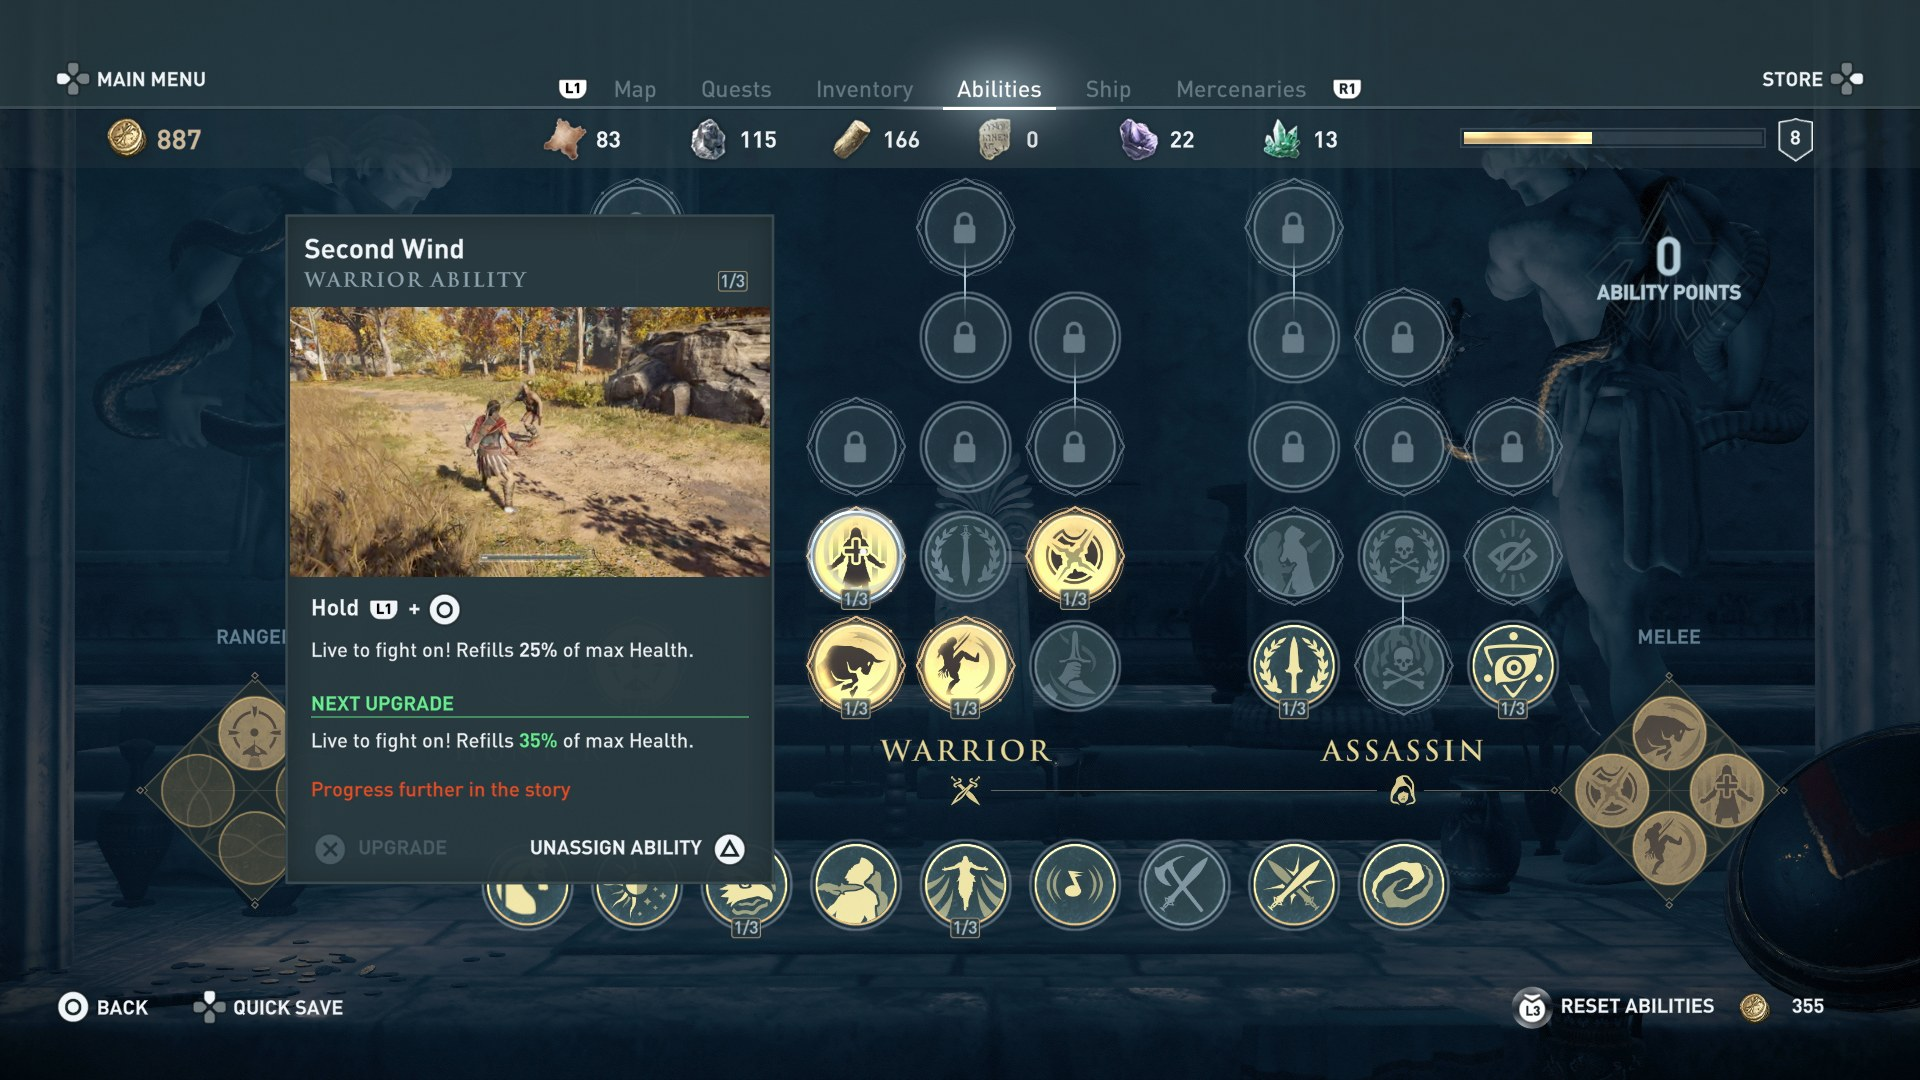 Assassin's Creed Odyssey Abilities - Which Abilities Should